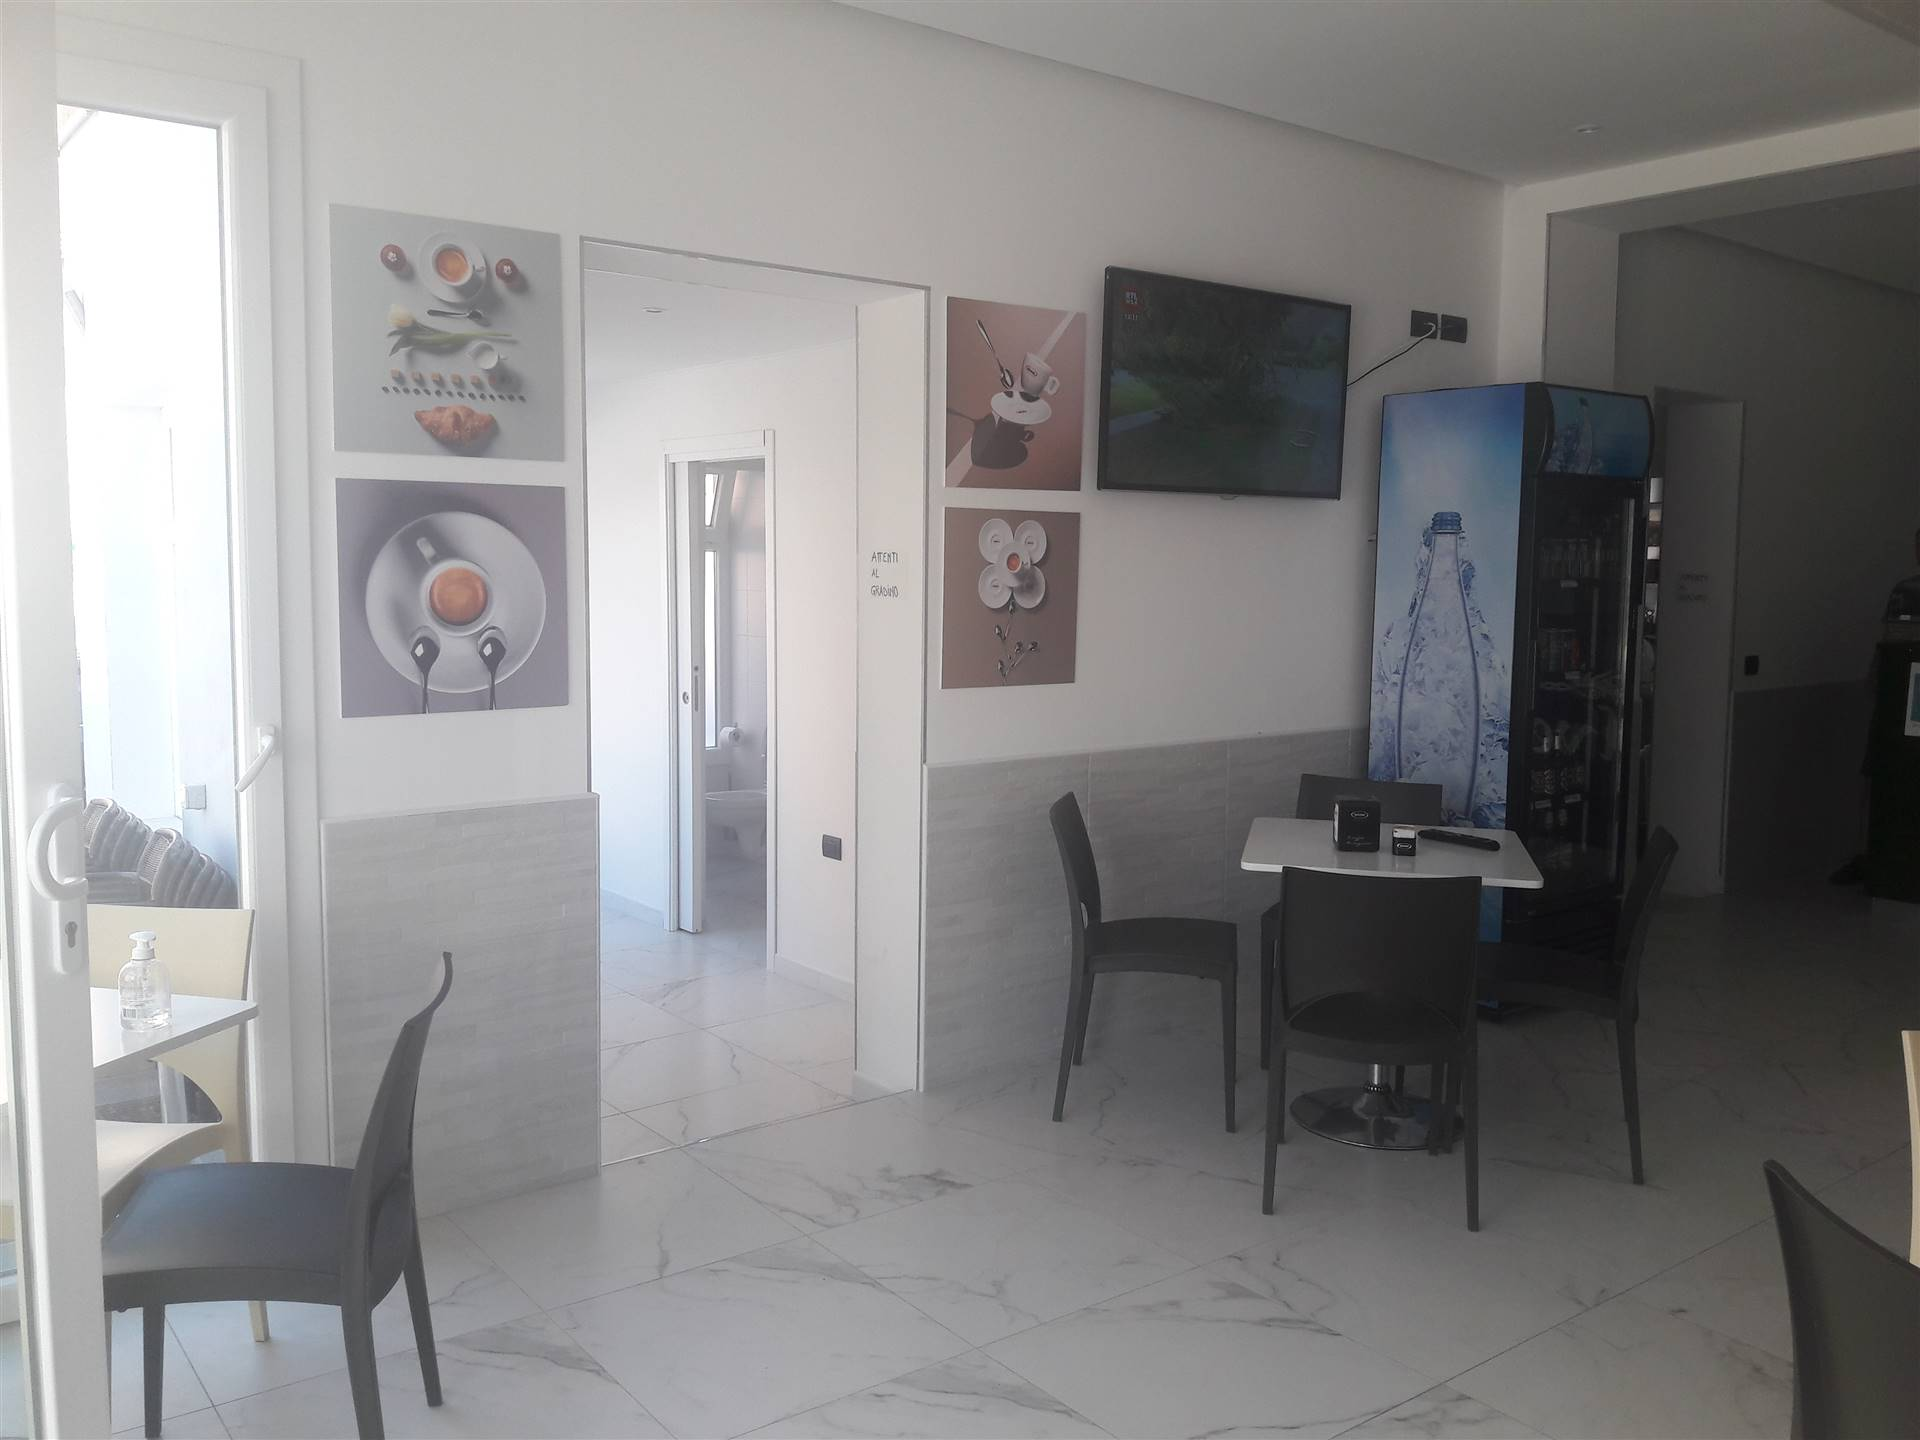 SOTTOMARINA, CHIOGGIA, Restaurant for sale of 100 Sq. mt., Heating Individual heating system, Energetic class: G, placed at Ground, composed by: 2